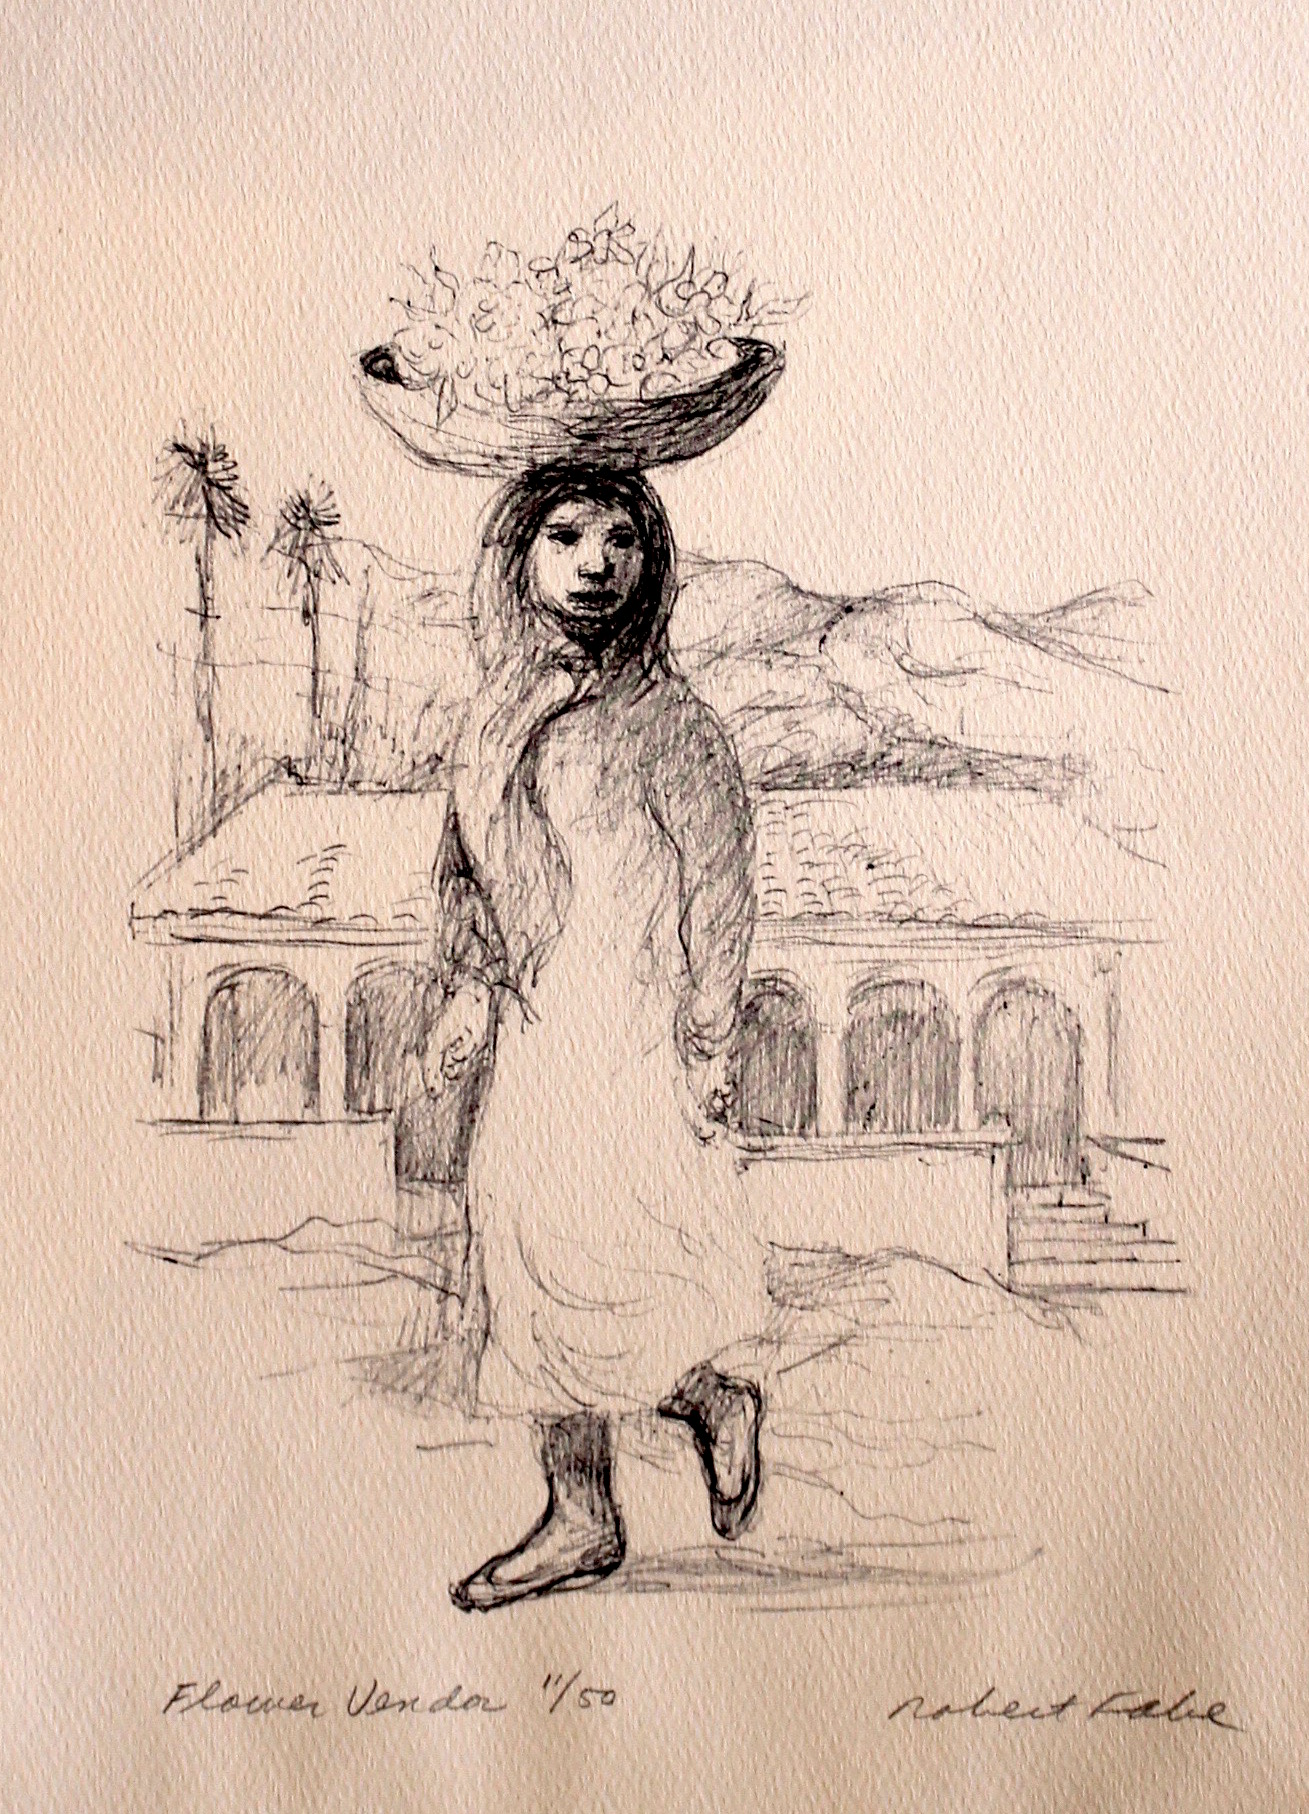 """Flower Vendor"", print ed. 11/50, 13.5x11 in"